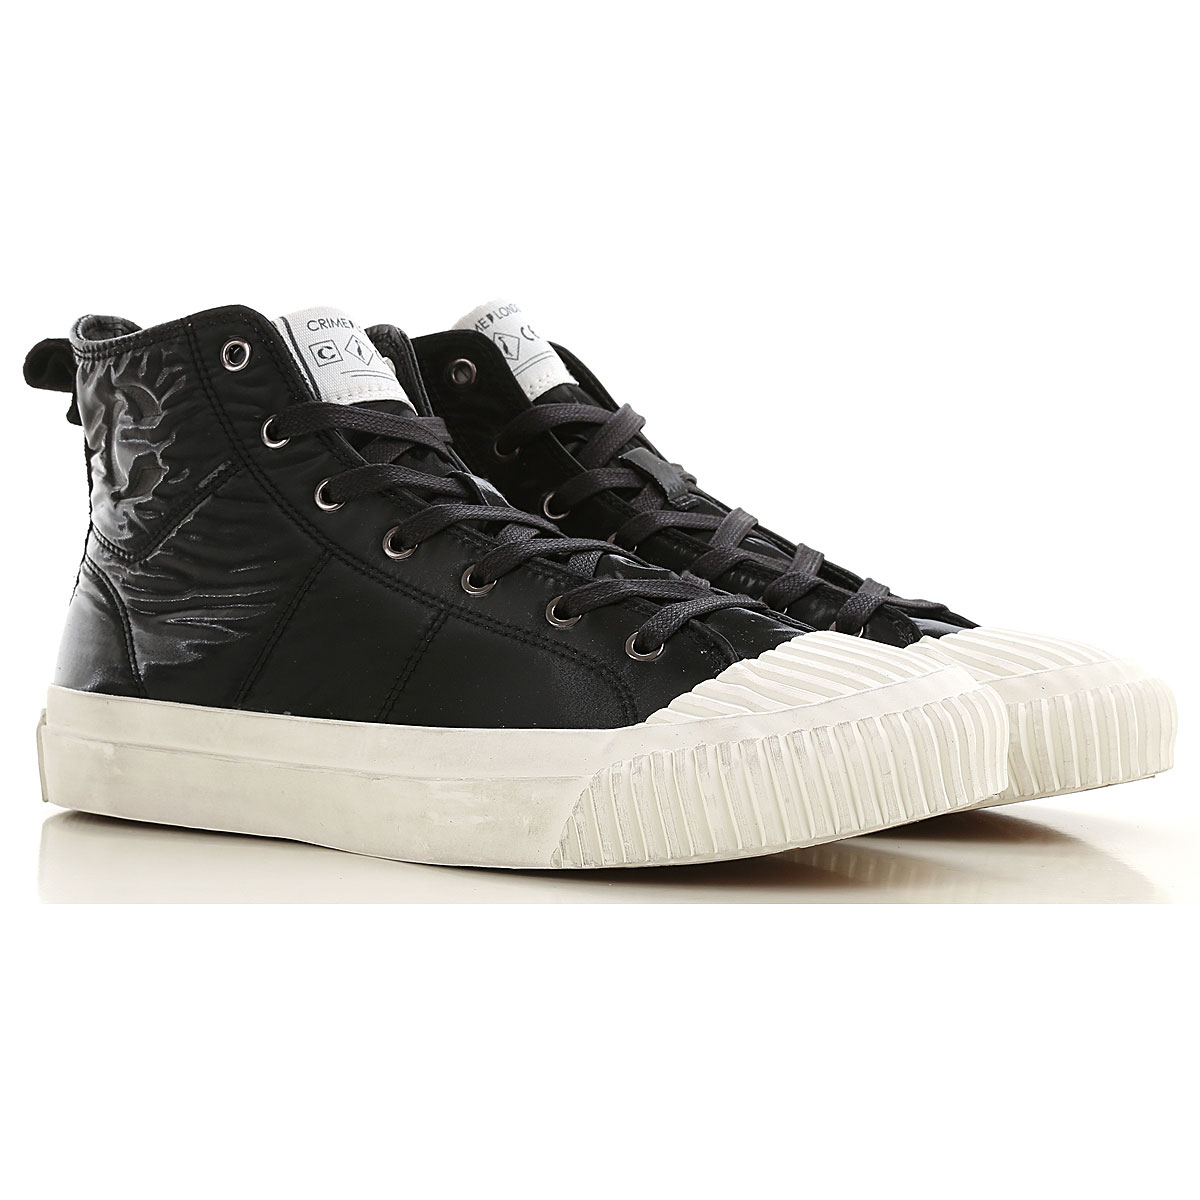 Crime Sneakers for Women On Sale, Black, Leather, 2019, 10 7 8